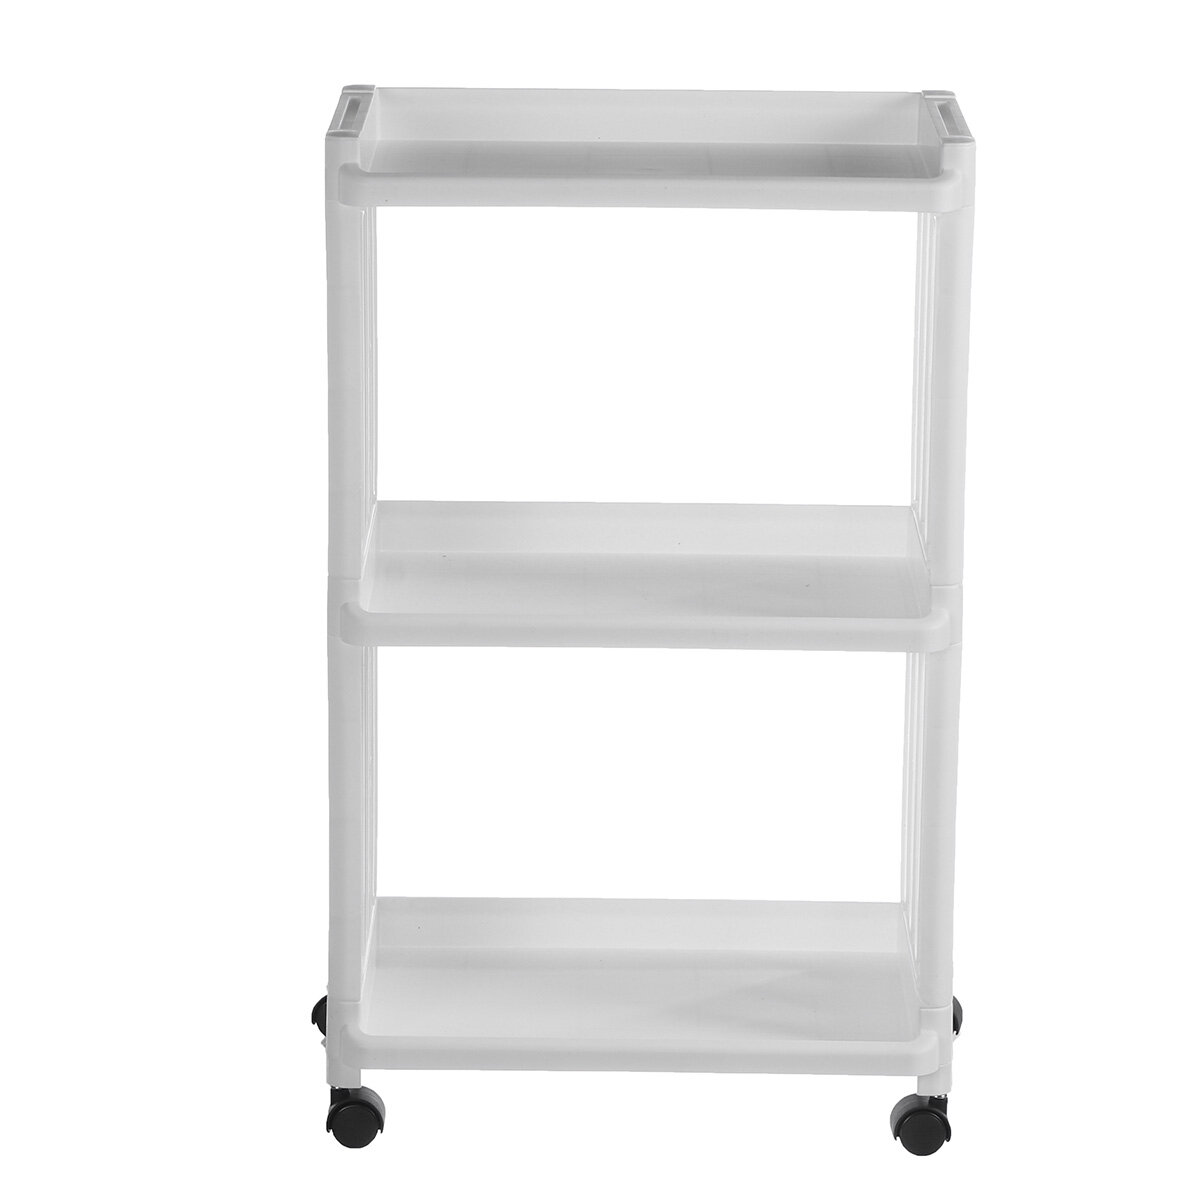 3/4 Tier Storage Cart Trolley Slide Out Rack Holder Home Kitchen Pull Out Shelf